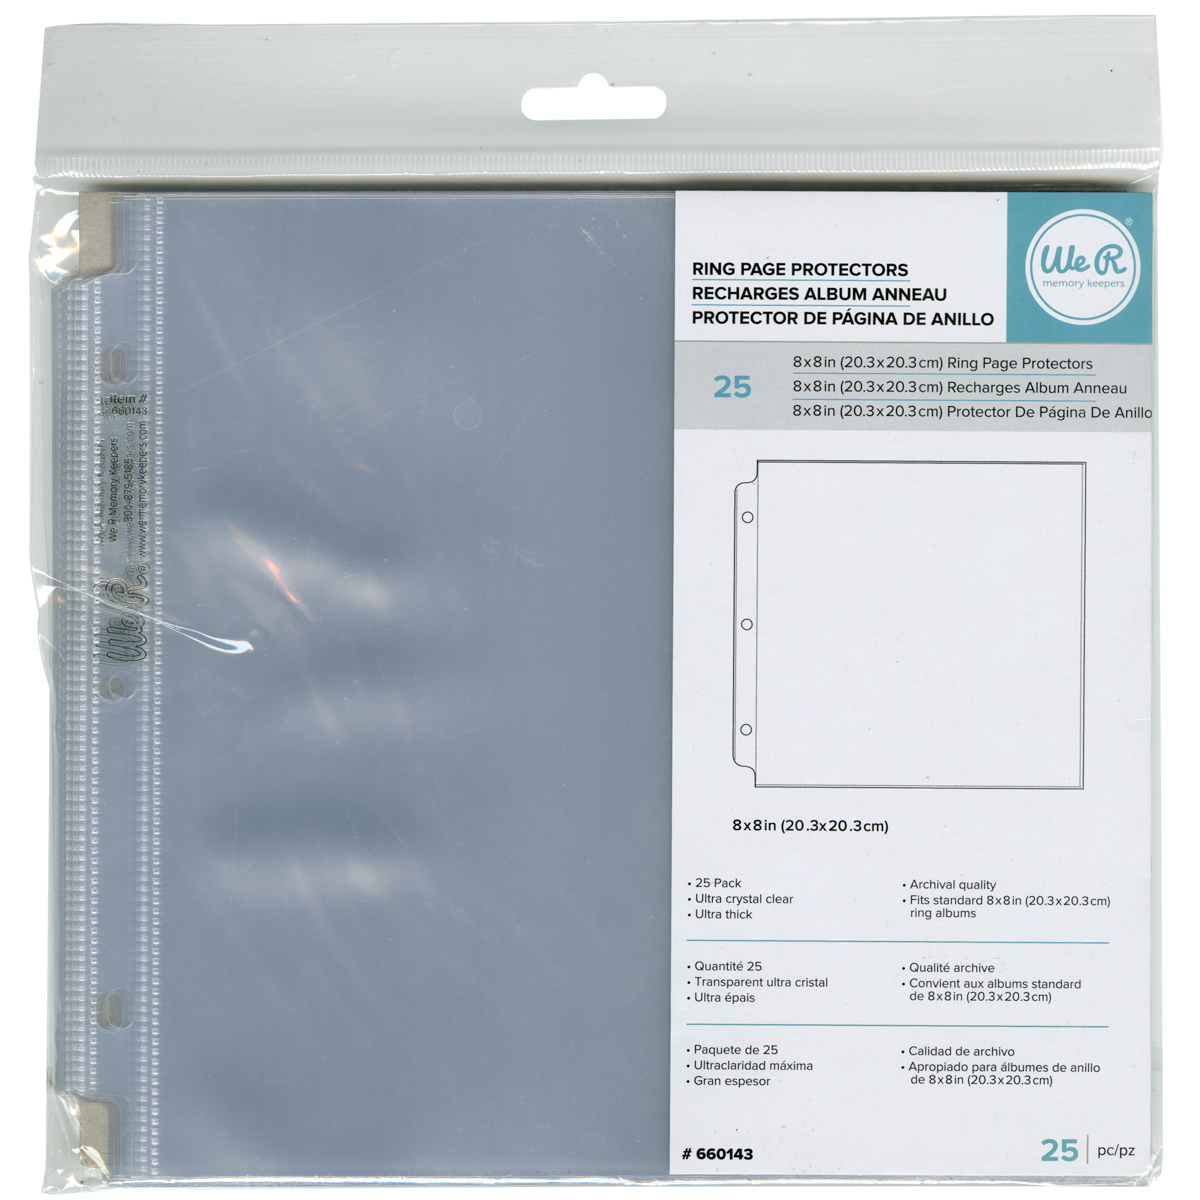 WeR Ring Page Protectors - 8x8